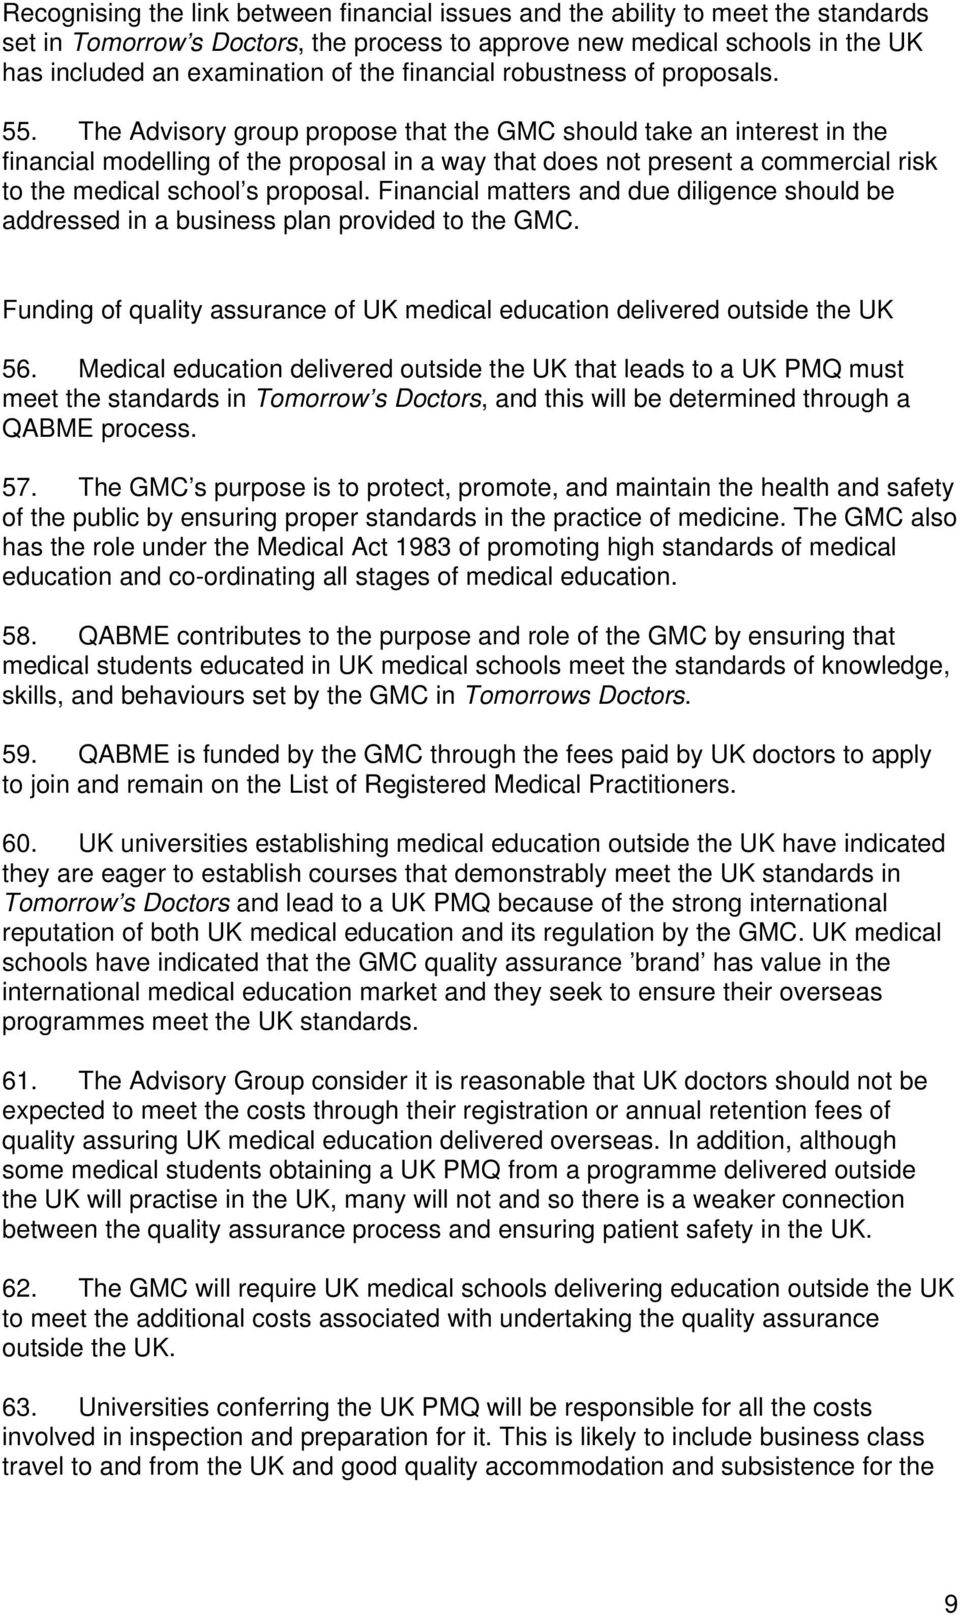 The Advisory group propose that the GMC should take an interest in the financial modelling of the proposal in a way that does not present a commercial risk to the medical school s proposal.